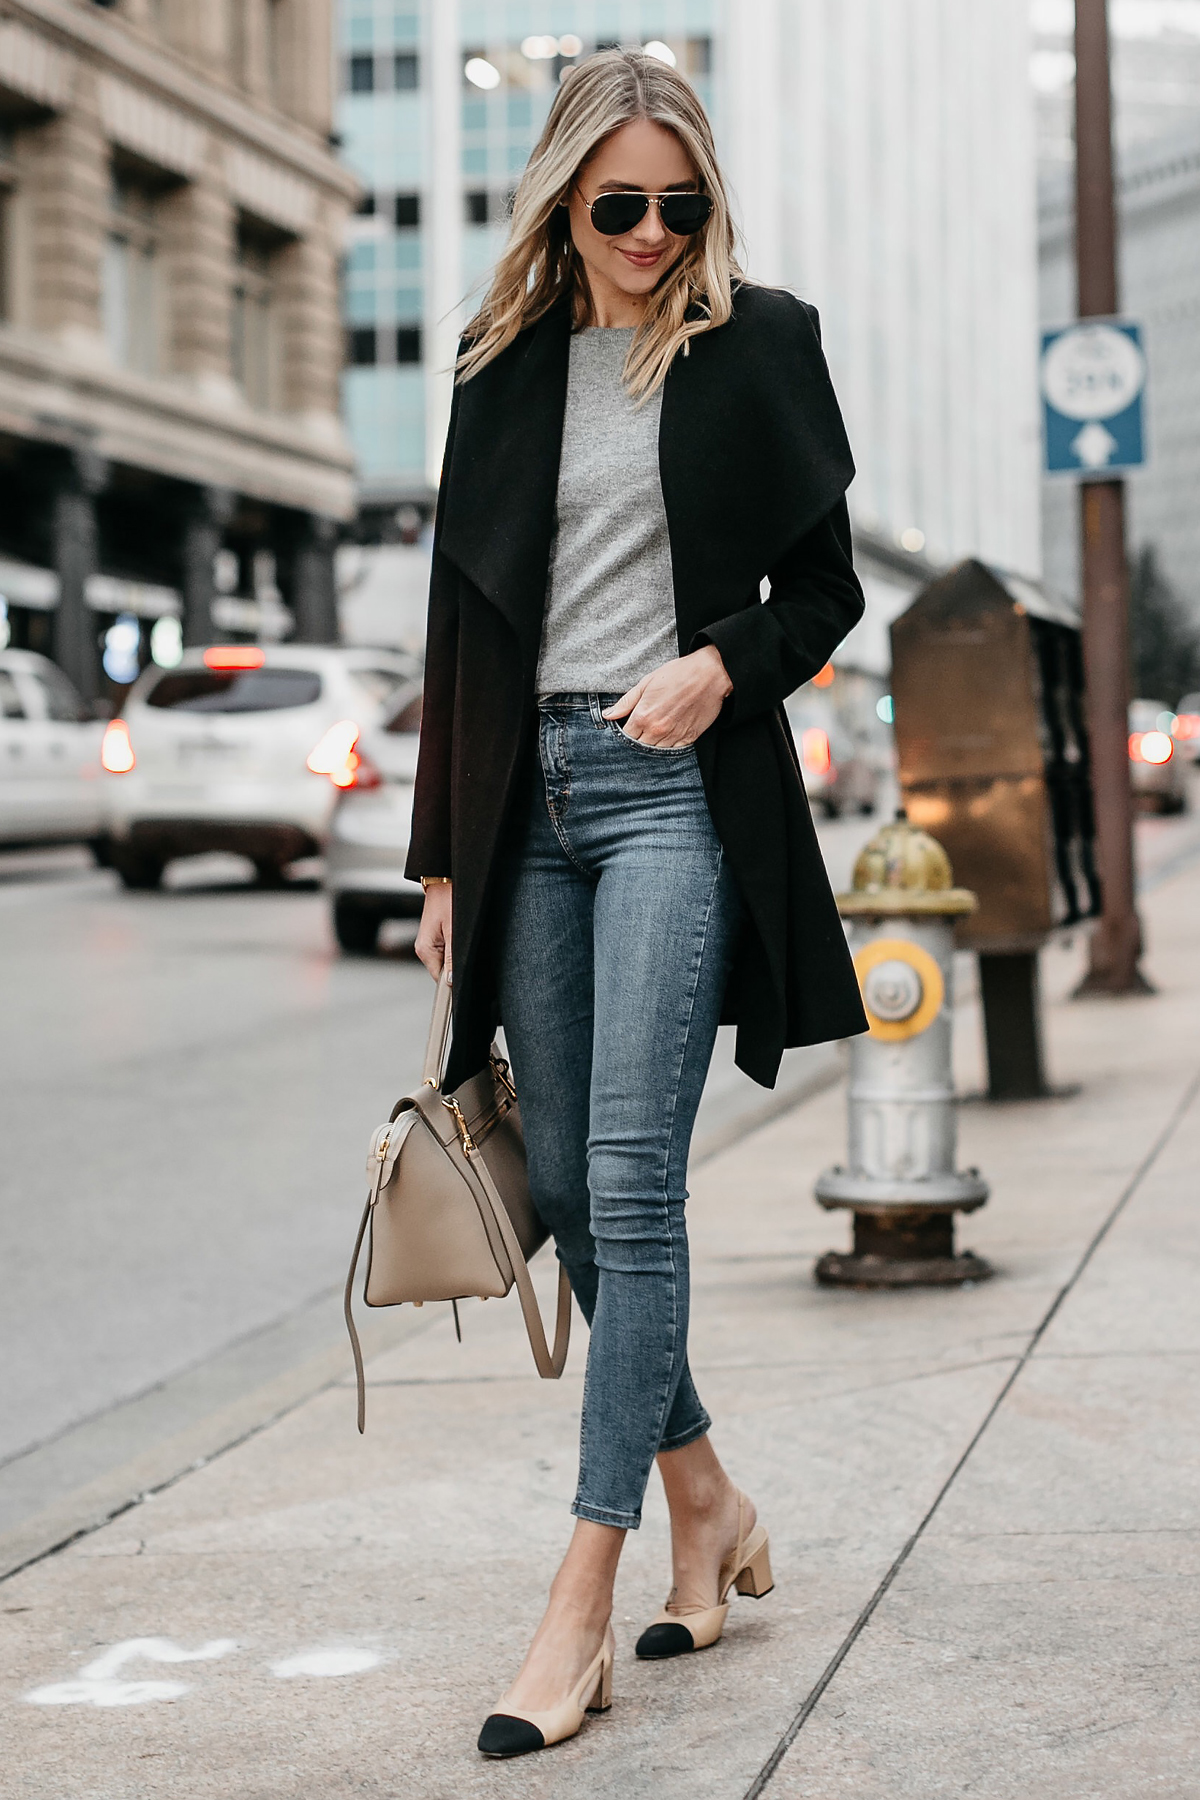 Blonde Woman Wearing Black Wrap Coat Grey Sweater Denim Skinny Jeans Chanel Slingbacks Celine MIni Belt Bag Fashion Jackson Dallas Blogger Fashion Blogger Street Style